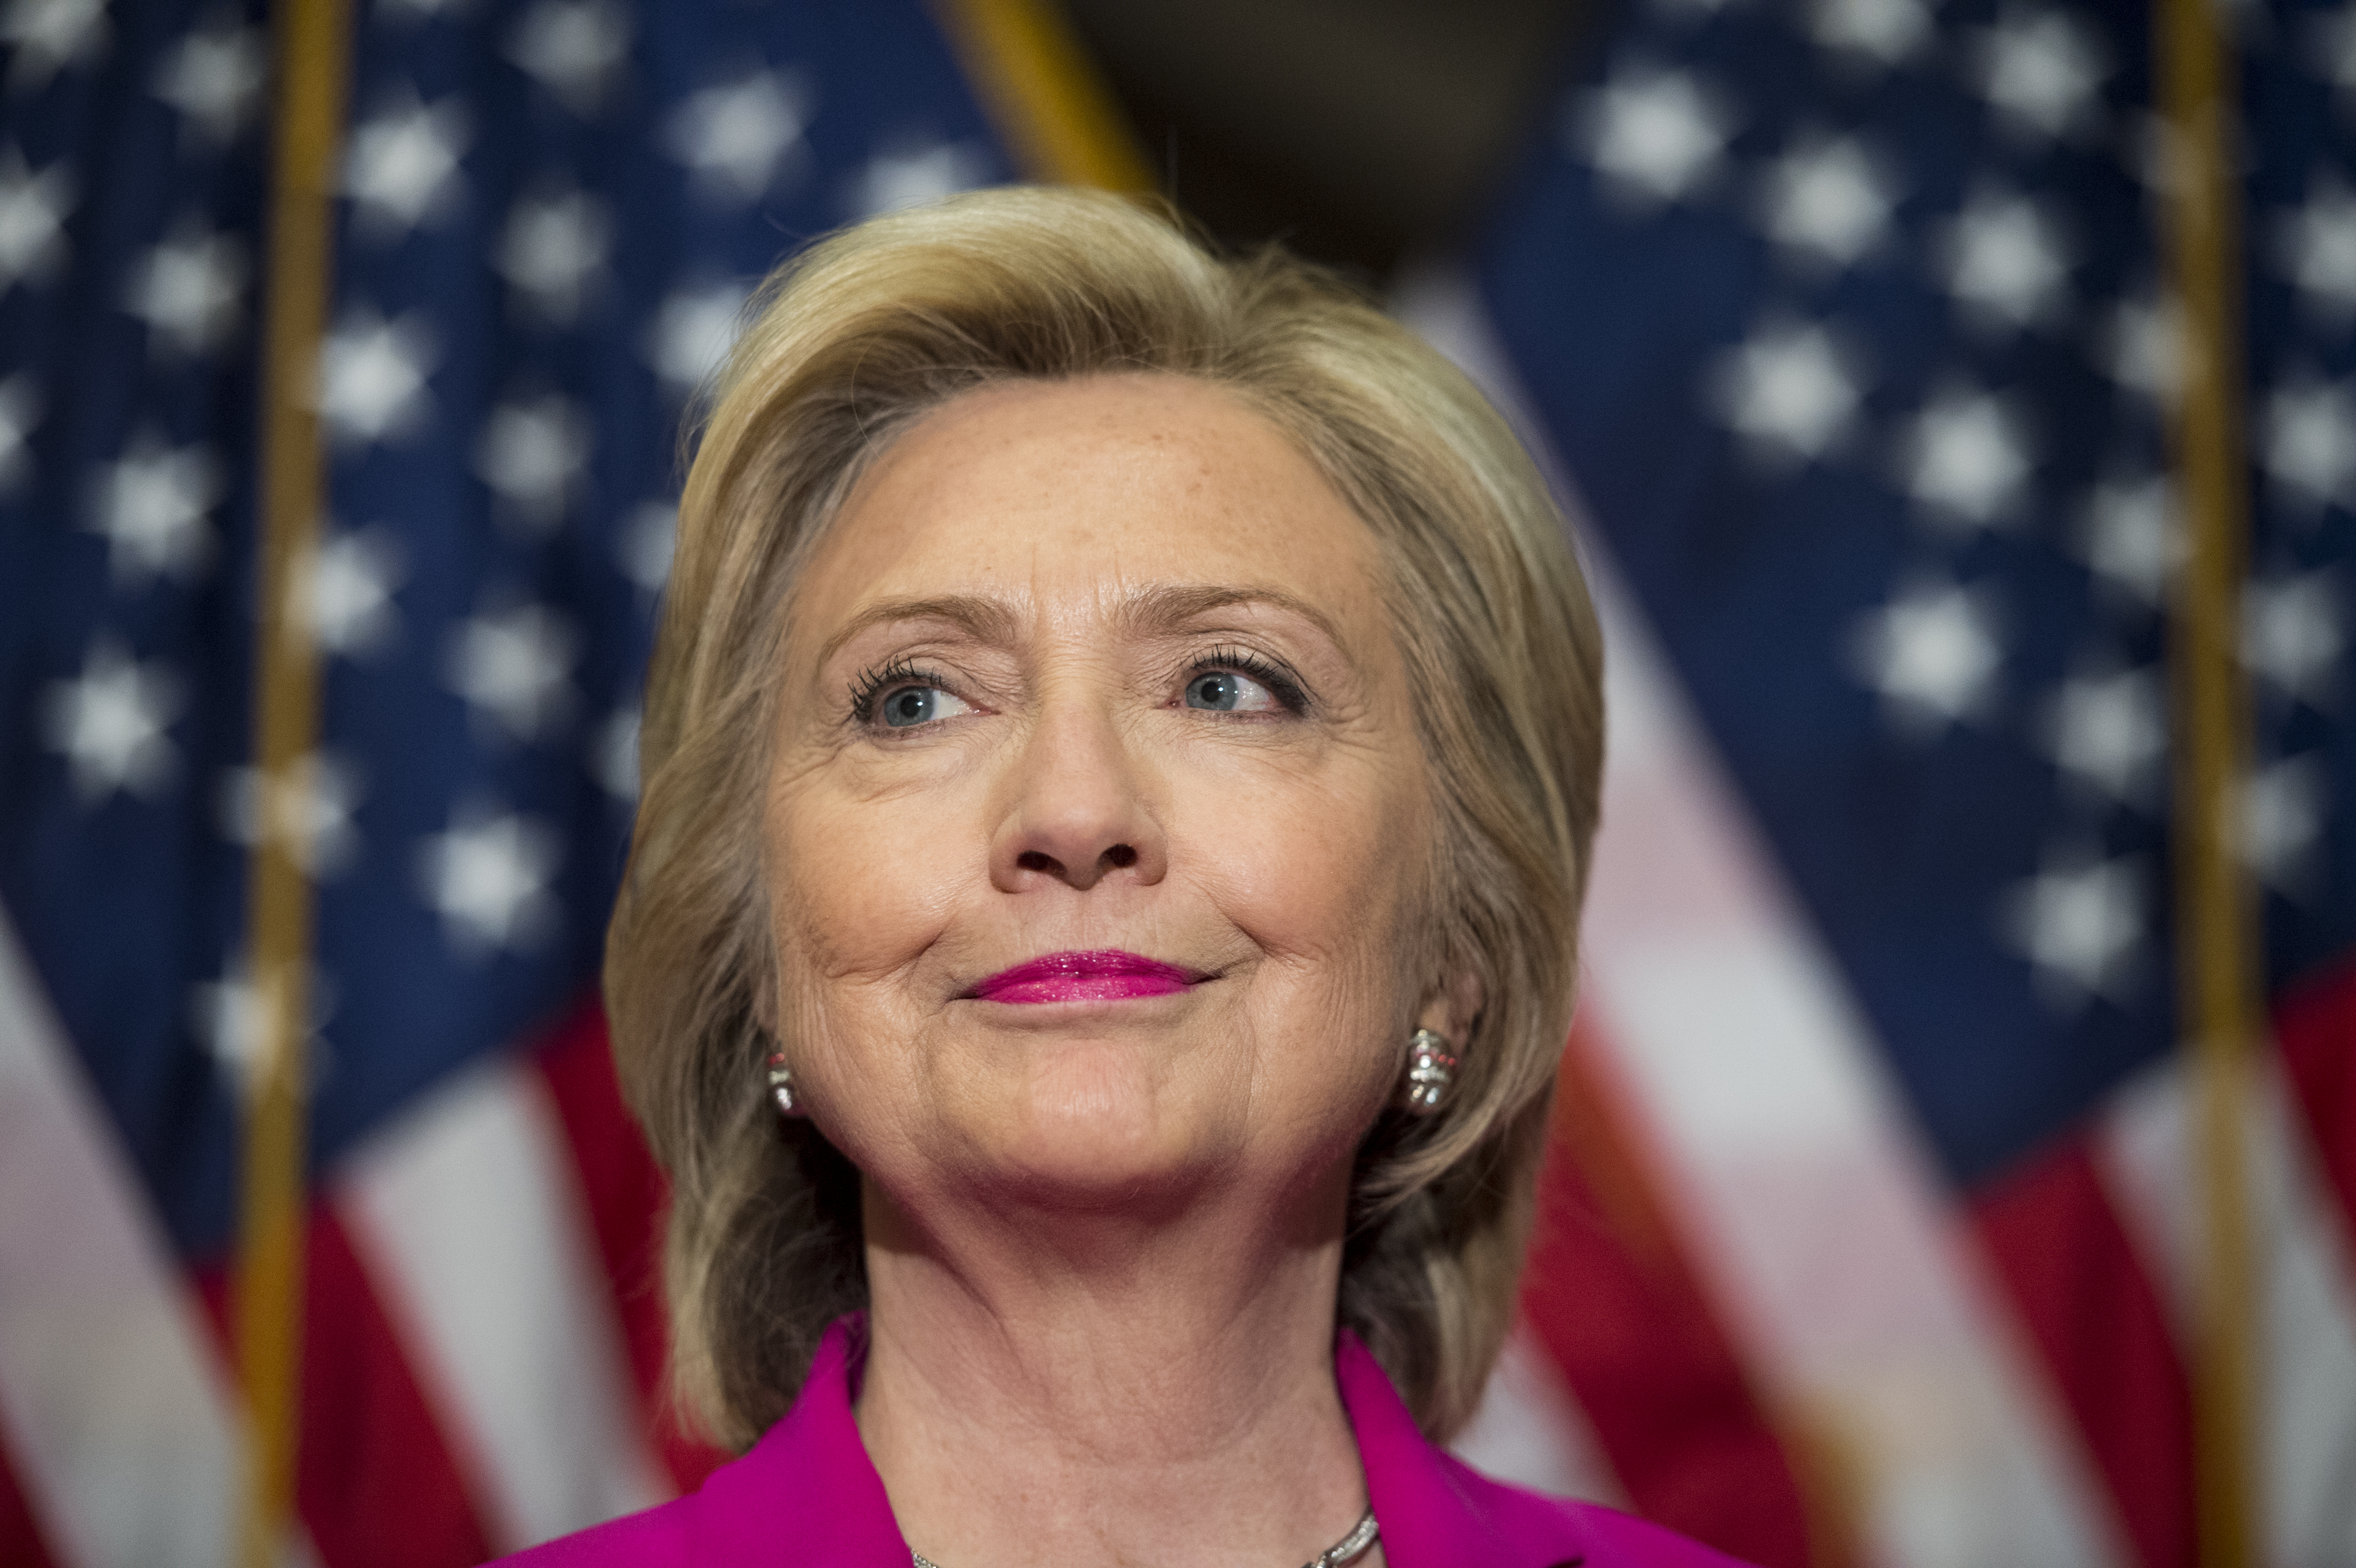 Hillary Rodham Clinton at the U.S. Capitol on July 14, 2015.